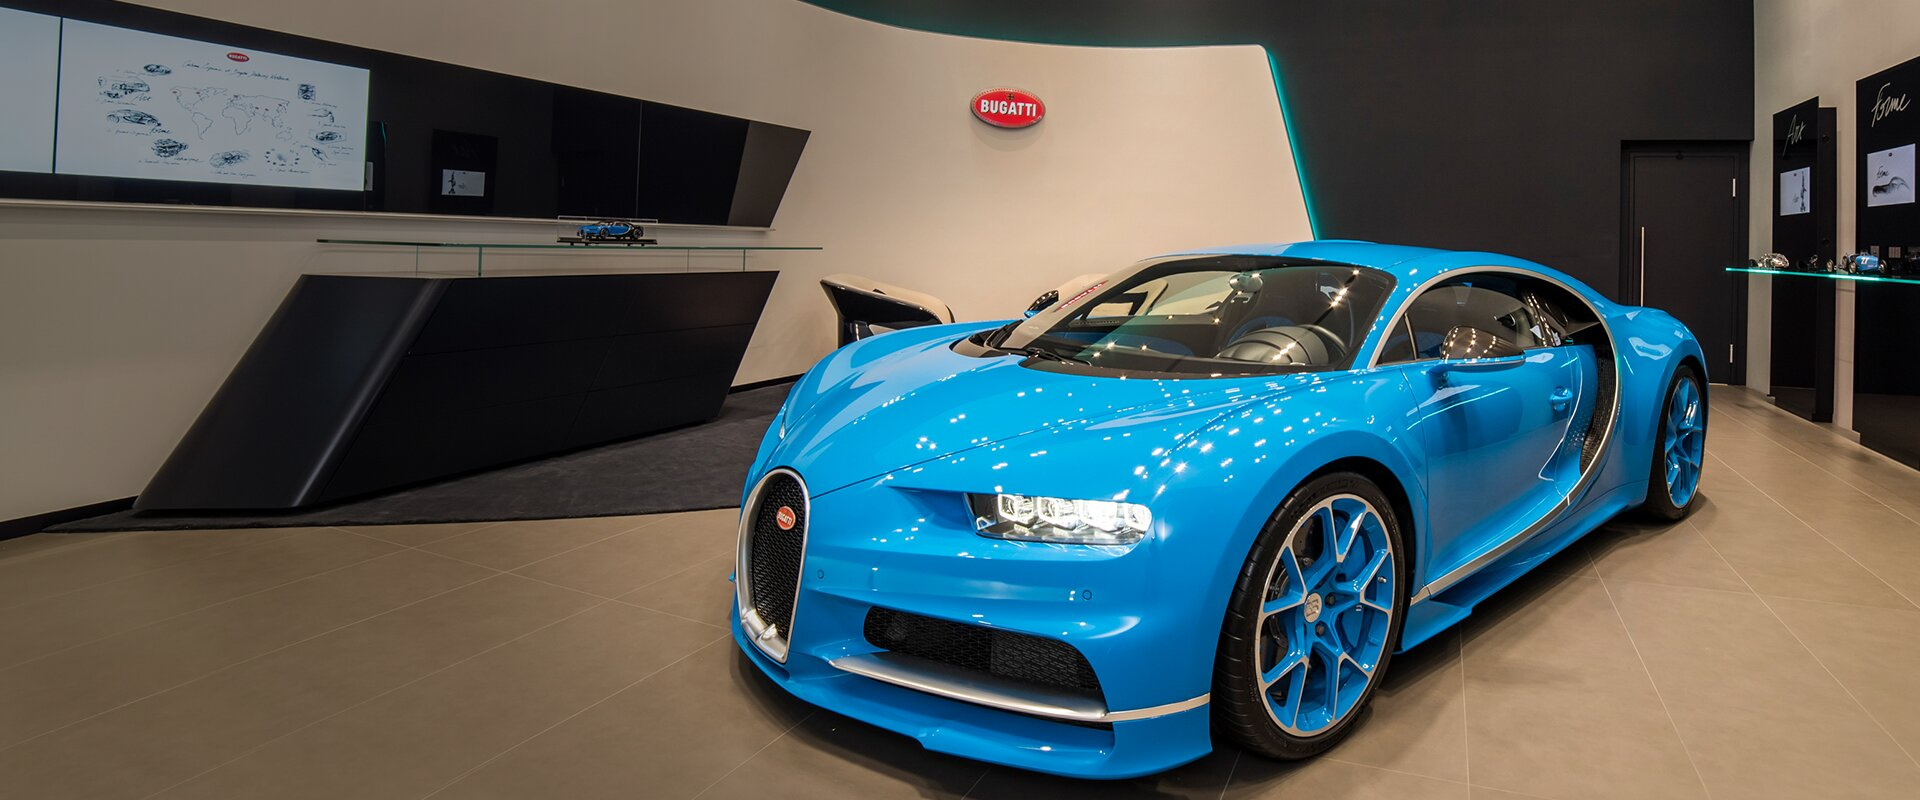 Bugatti Chiron Taiwan Presentation Sports Car Super